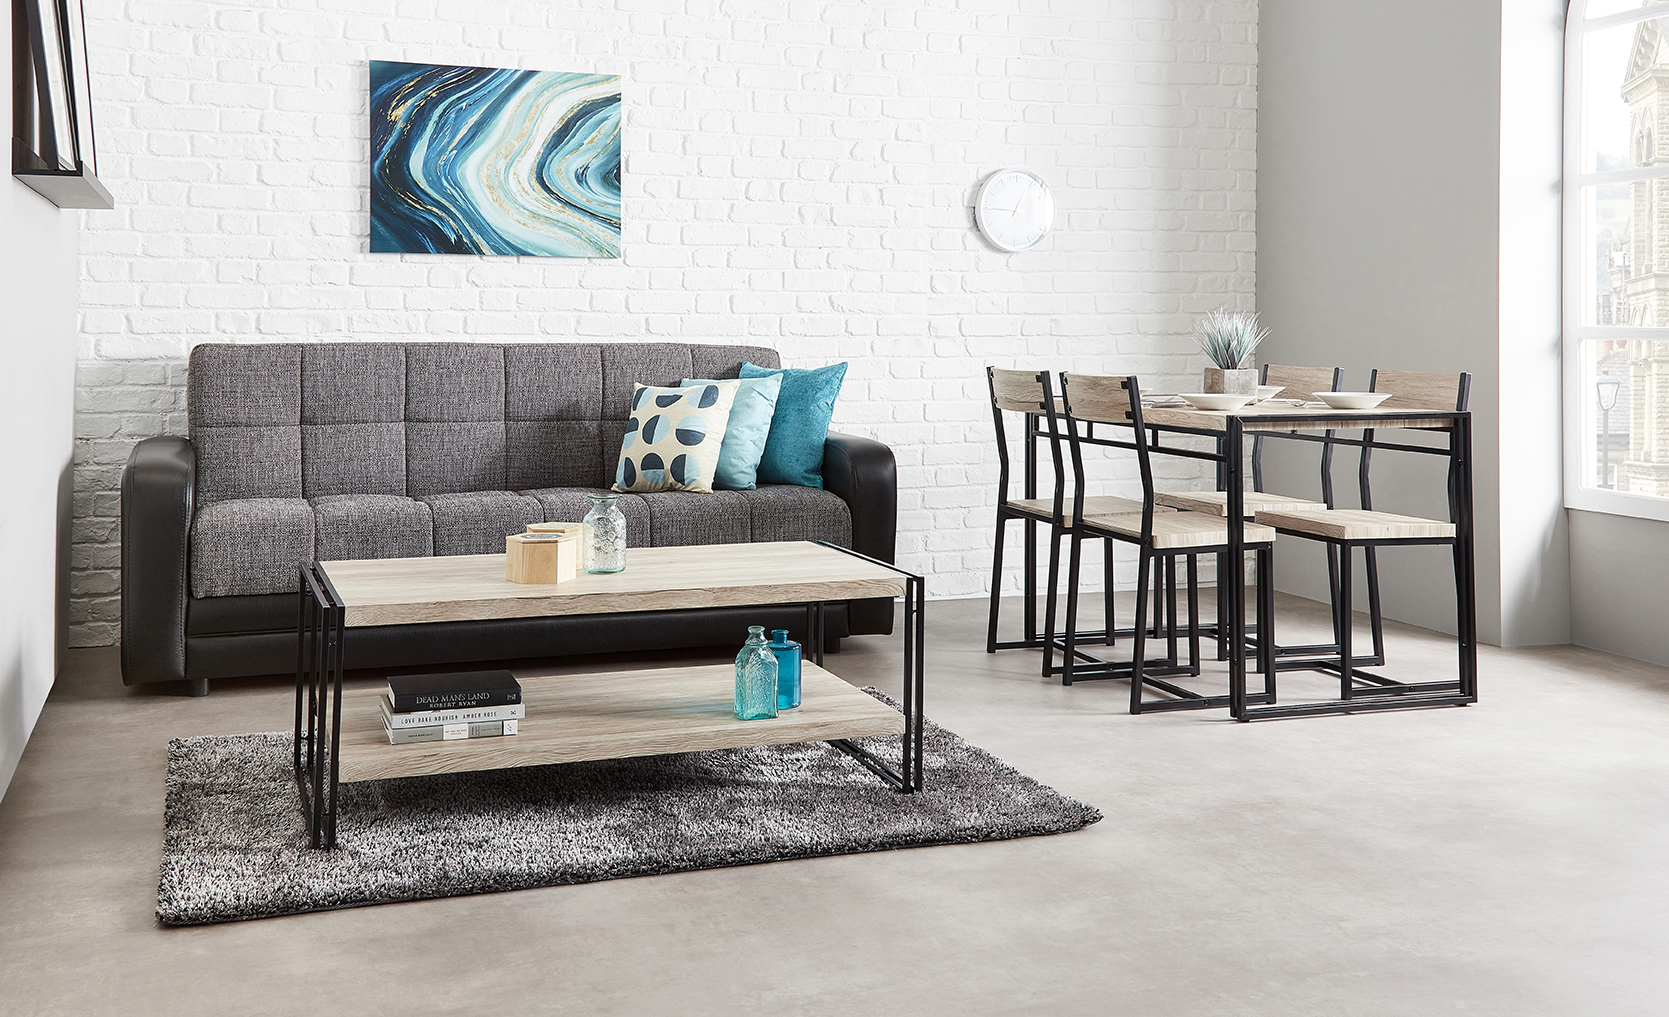 Serviced Apartment Furniture Packages, Hotels & Flats Packs